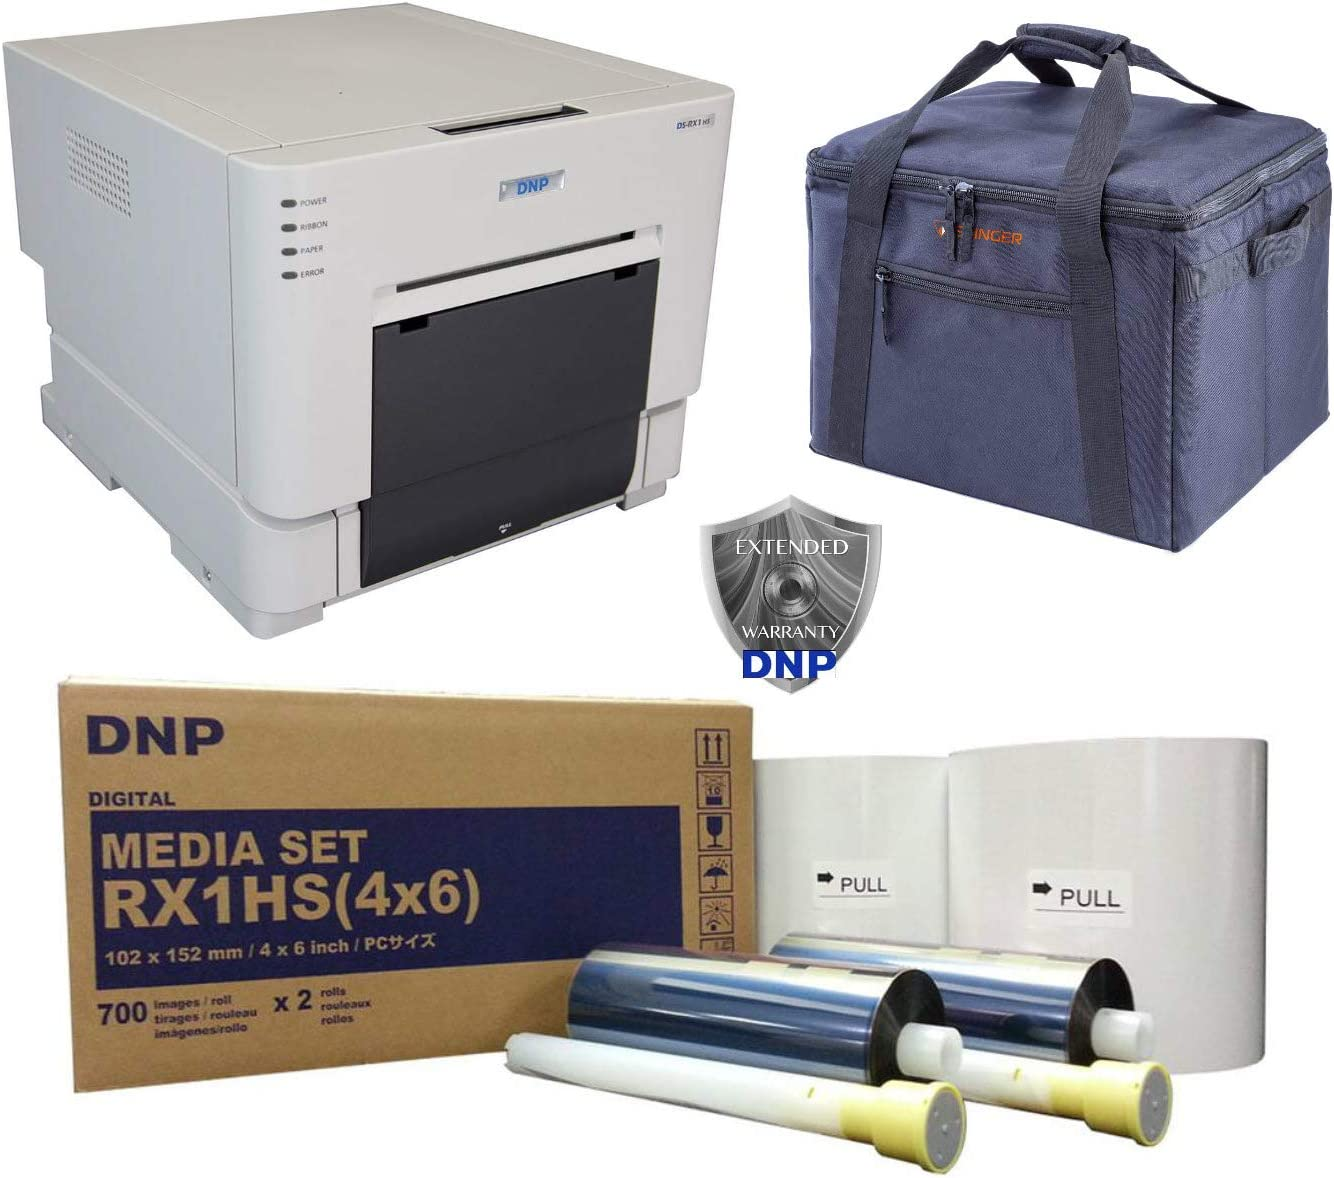 DNP DS-RX1HS Compact Event Photo Booth Portrait Printer Bundle with DNP Print Media 4x6-inch, 2 Rolls + Slinger Padded Printer Carrying Case + DNP 3 Year Extended Warranty